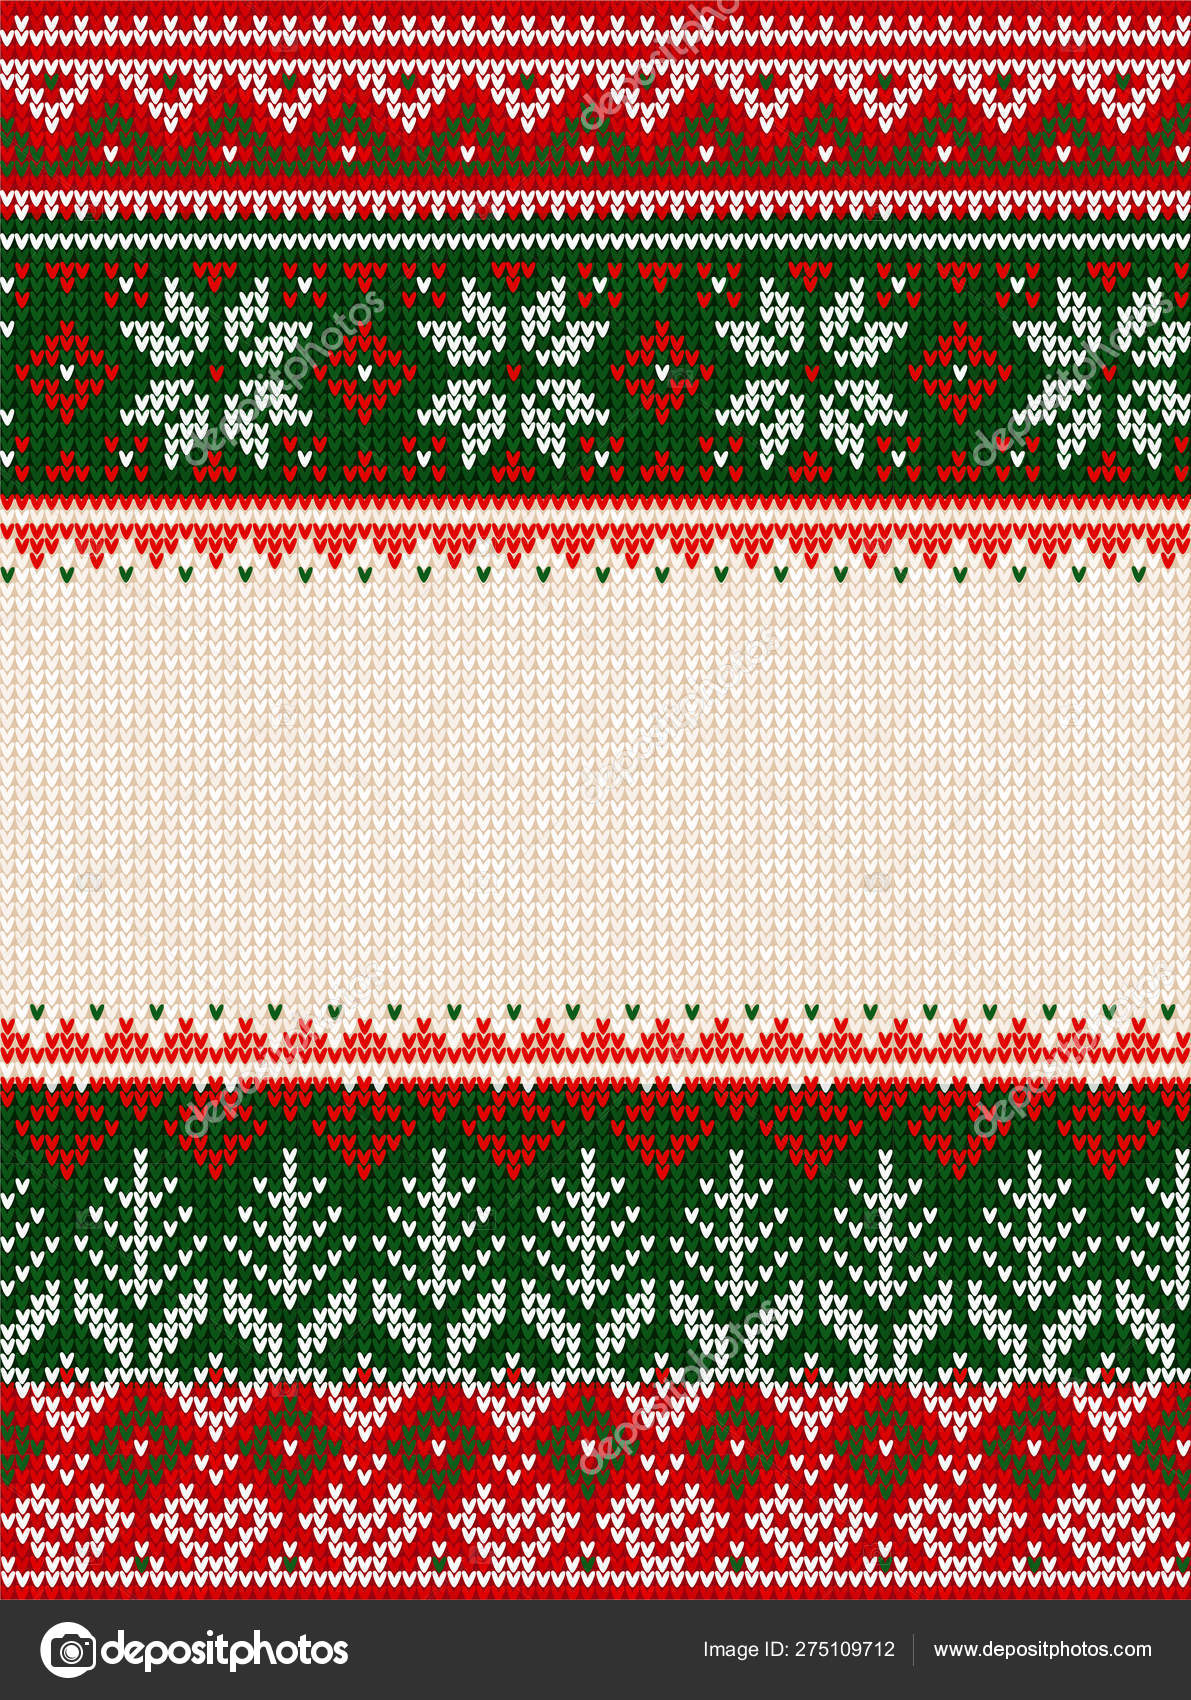 Ugly Sweater Merry Christmas Party Ornament Background Seamless Pattern Stock Vector C Svsunny 275109712